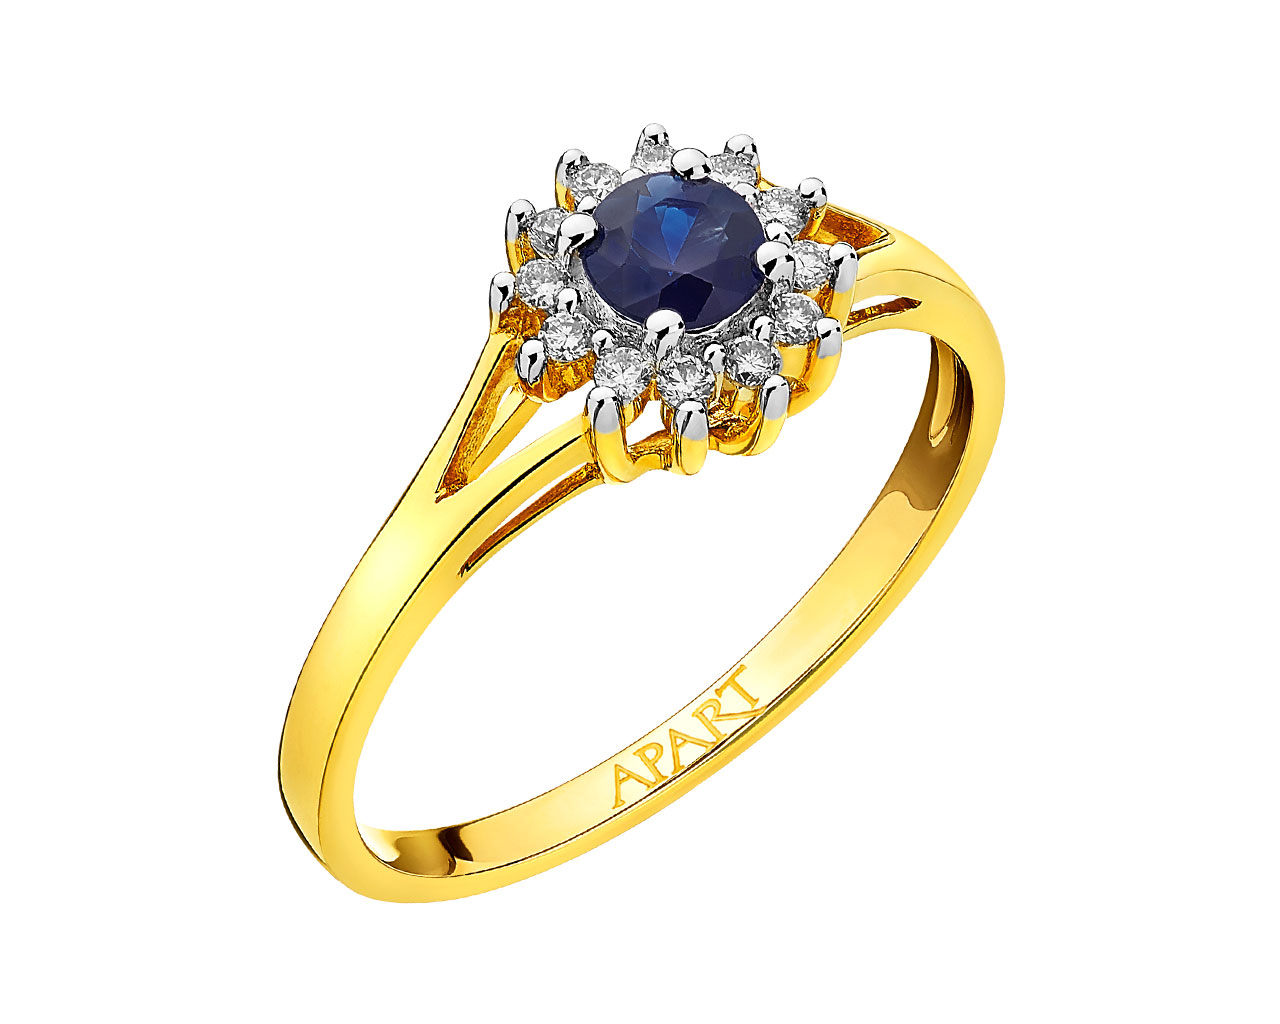 zoras white gold legend sossijewelry diamond custom engagement ring of by best sapphire made buy triforce hand a zelda